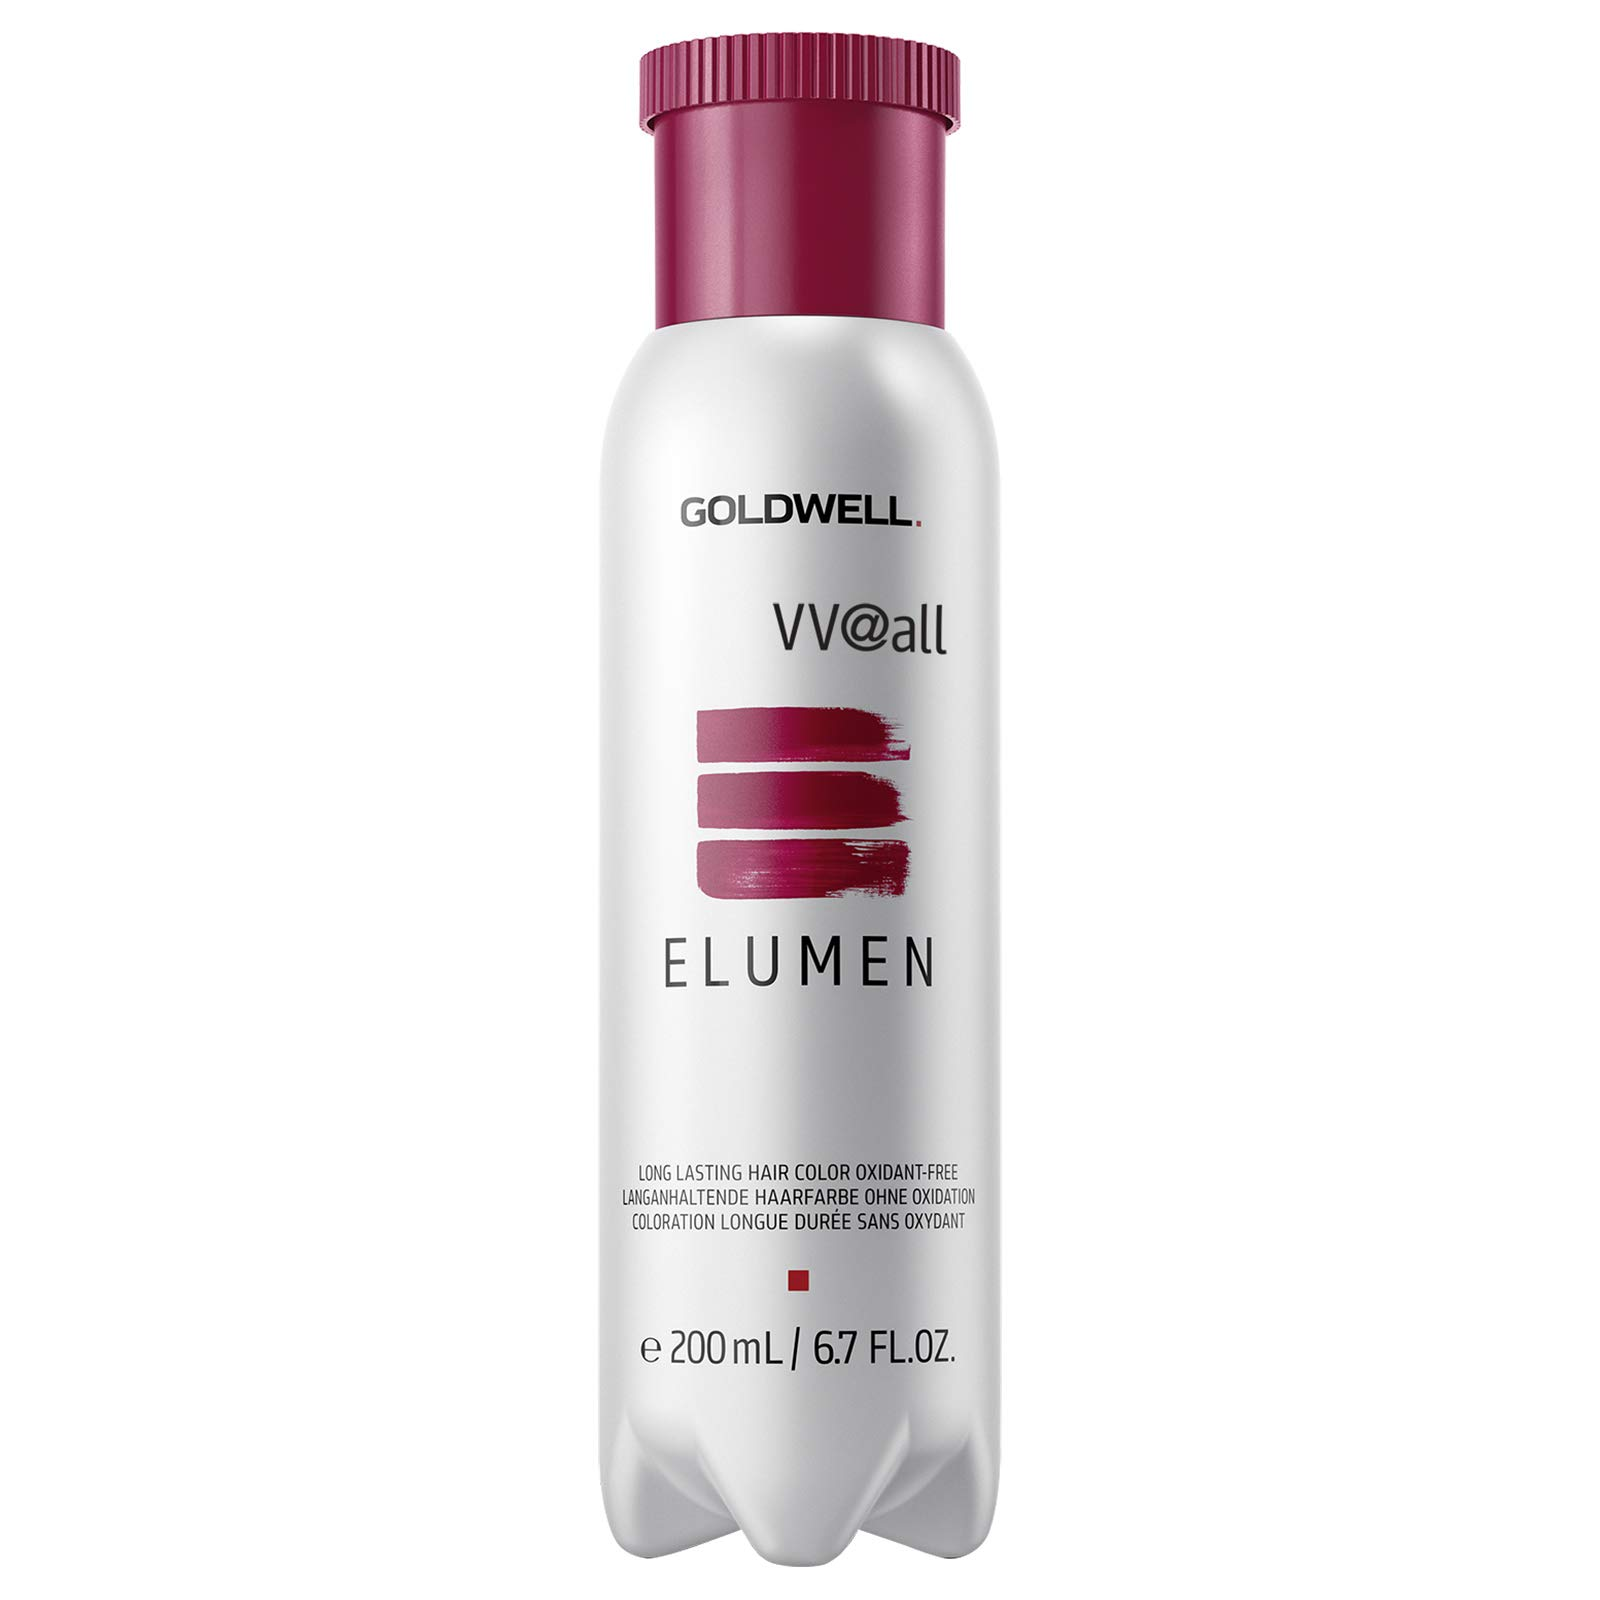 Goldwell Elumen Pure VV@all 3-10 (200ml)